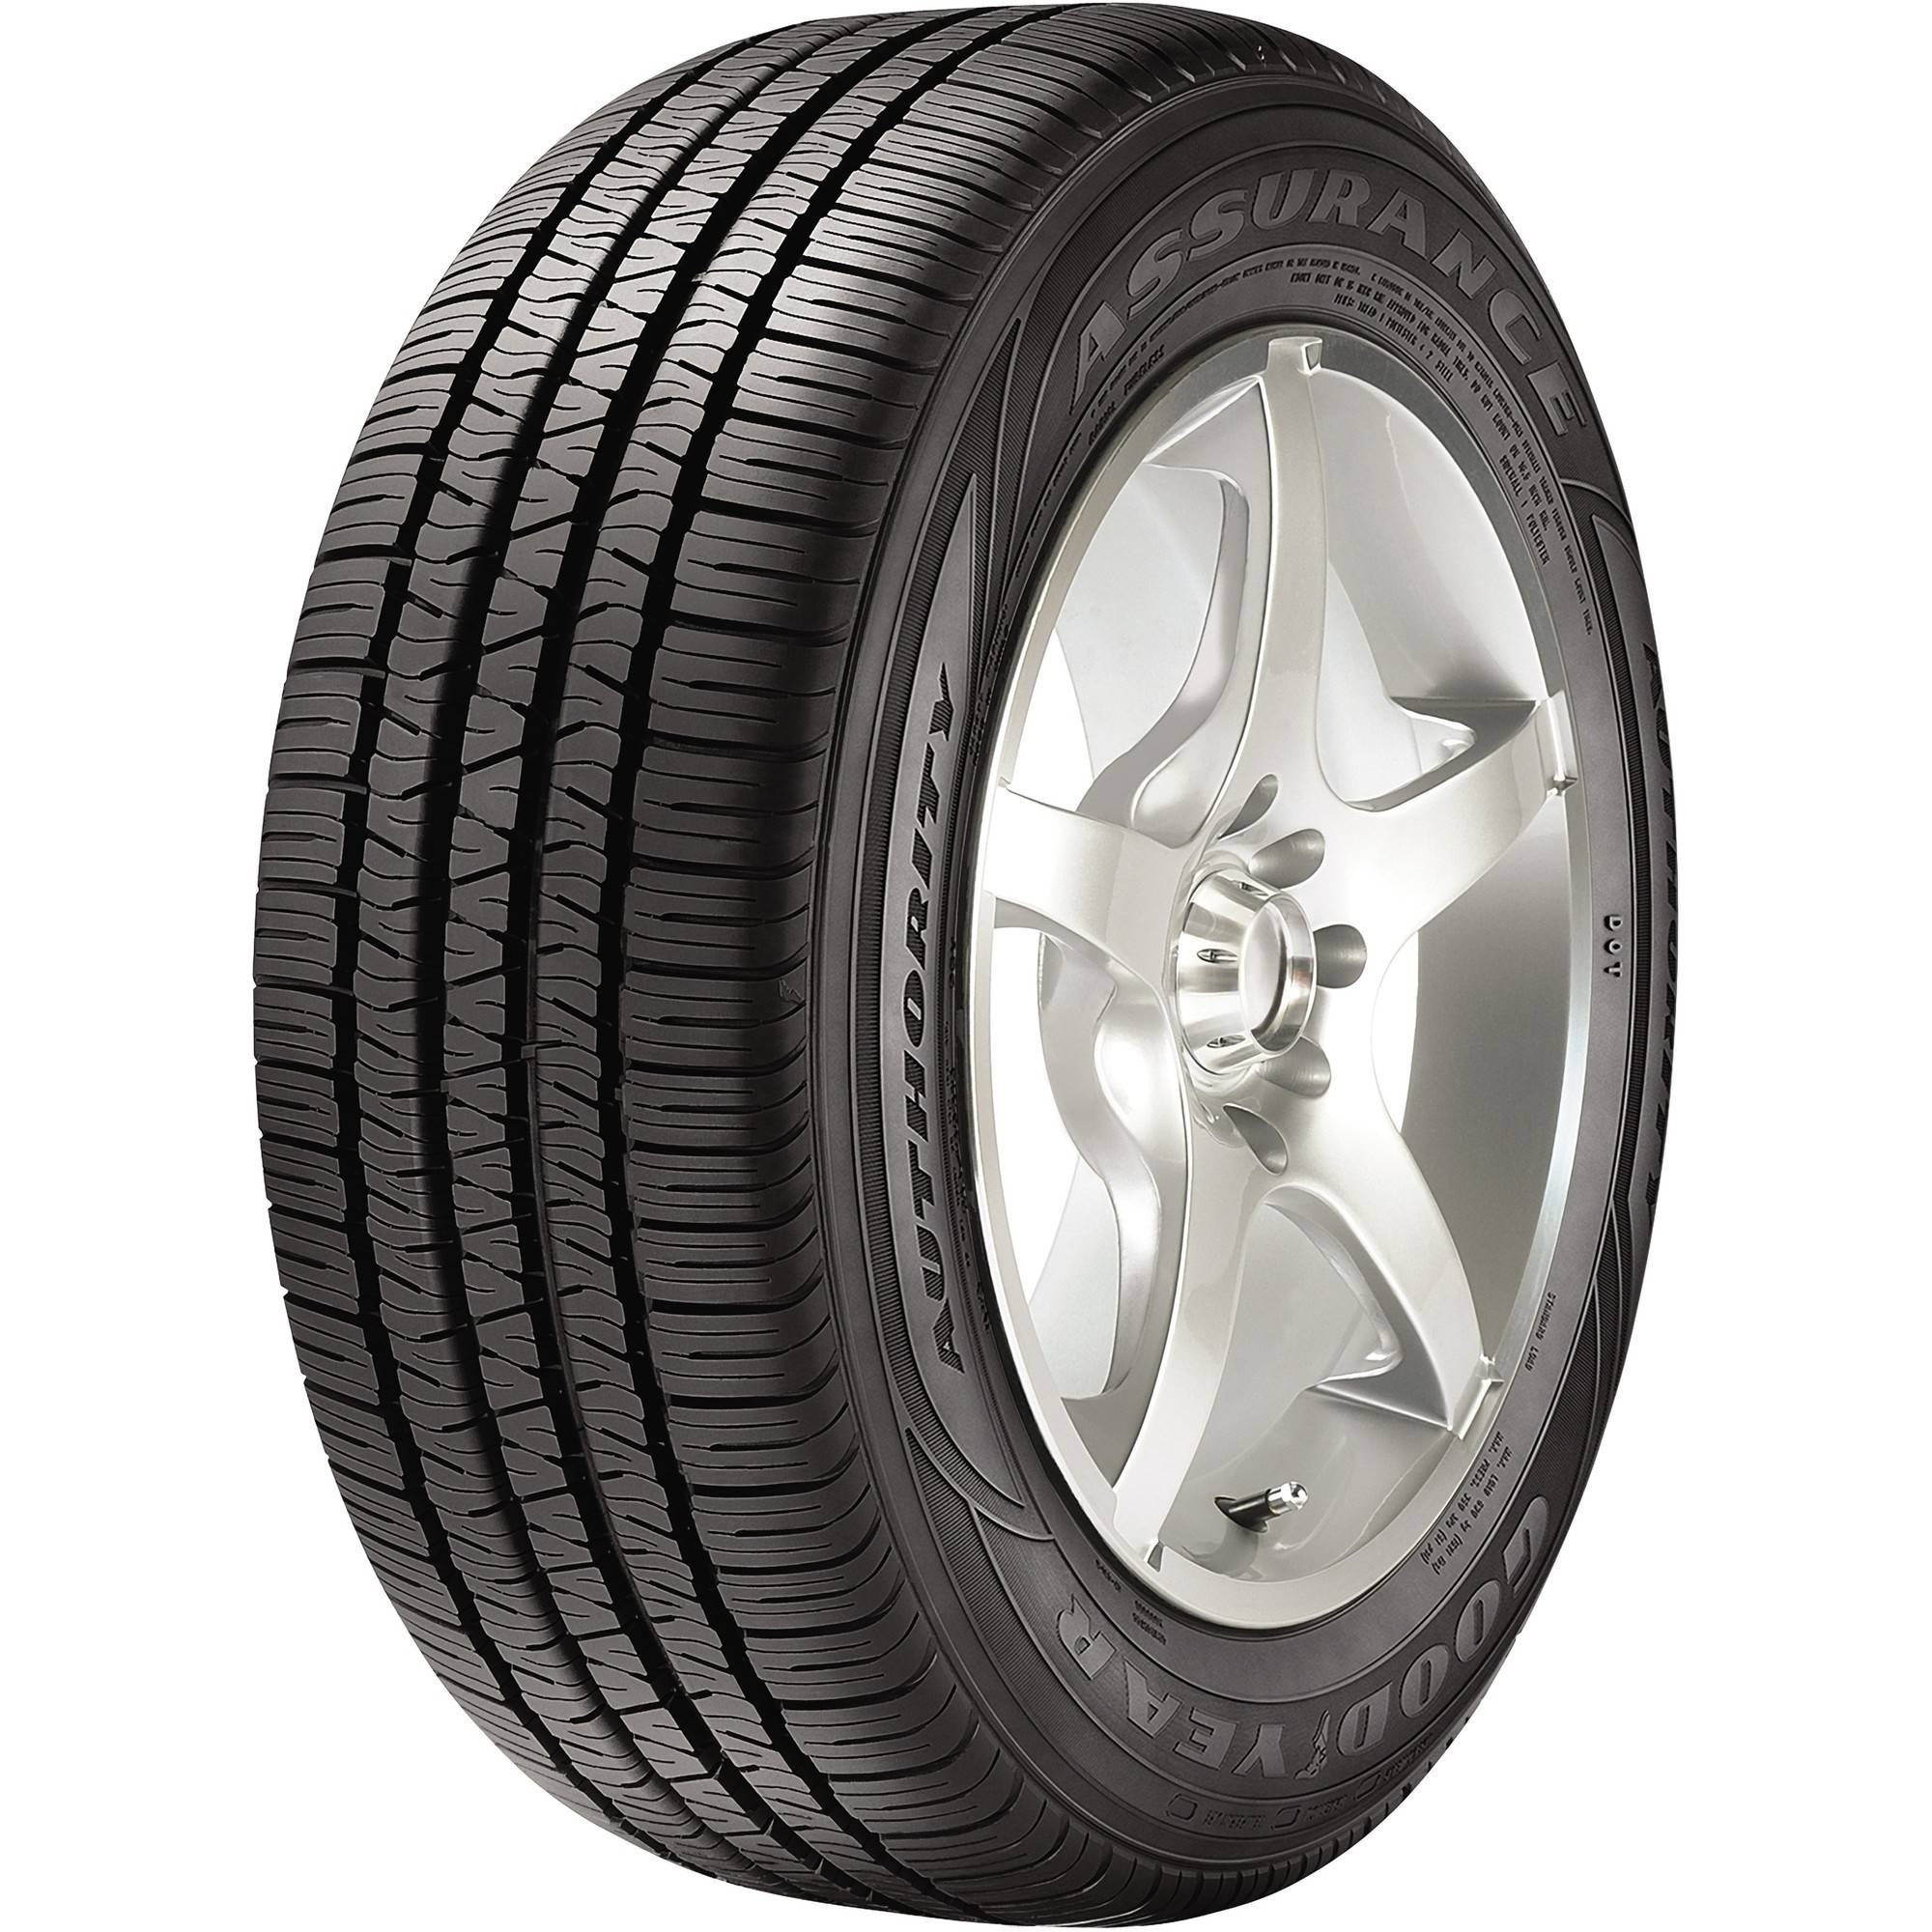 Goodyear Assurance Authority Tire 215/65R16  98T